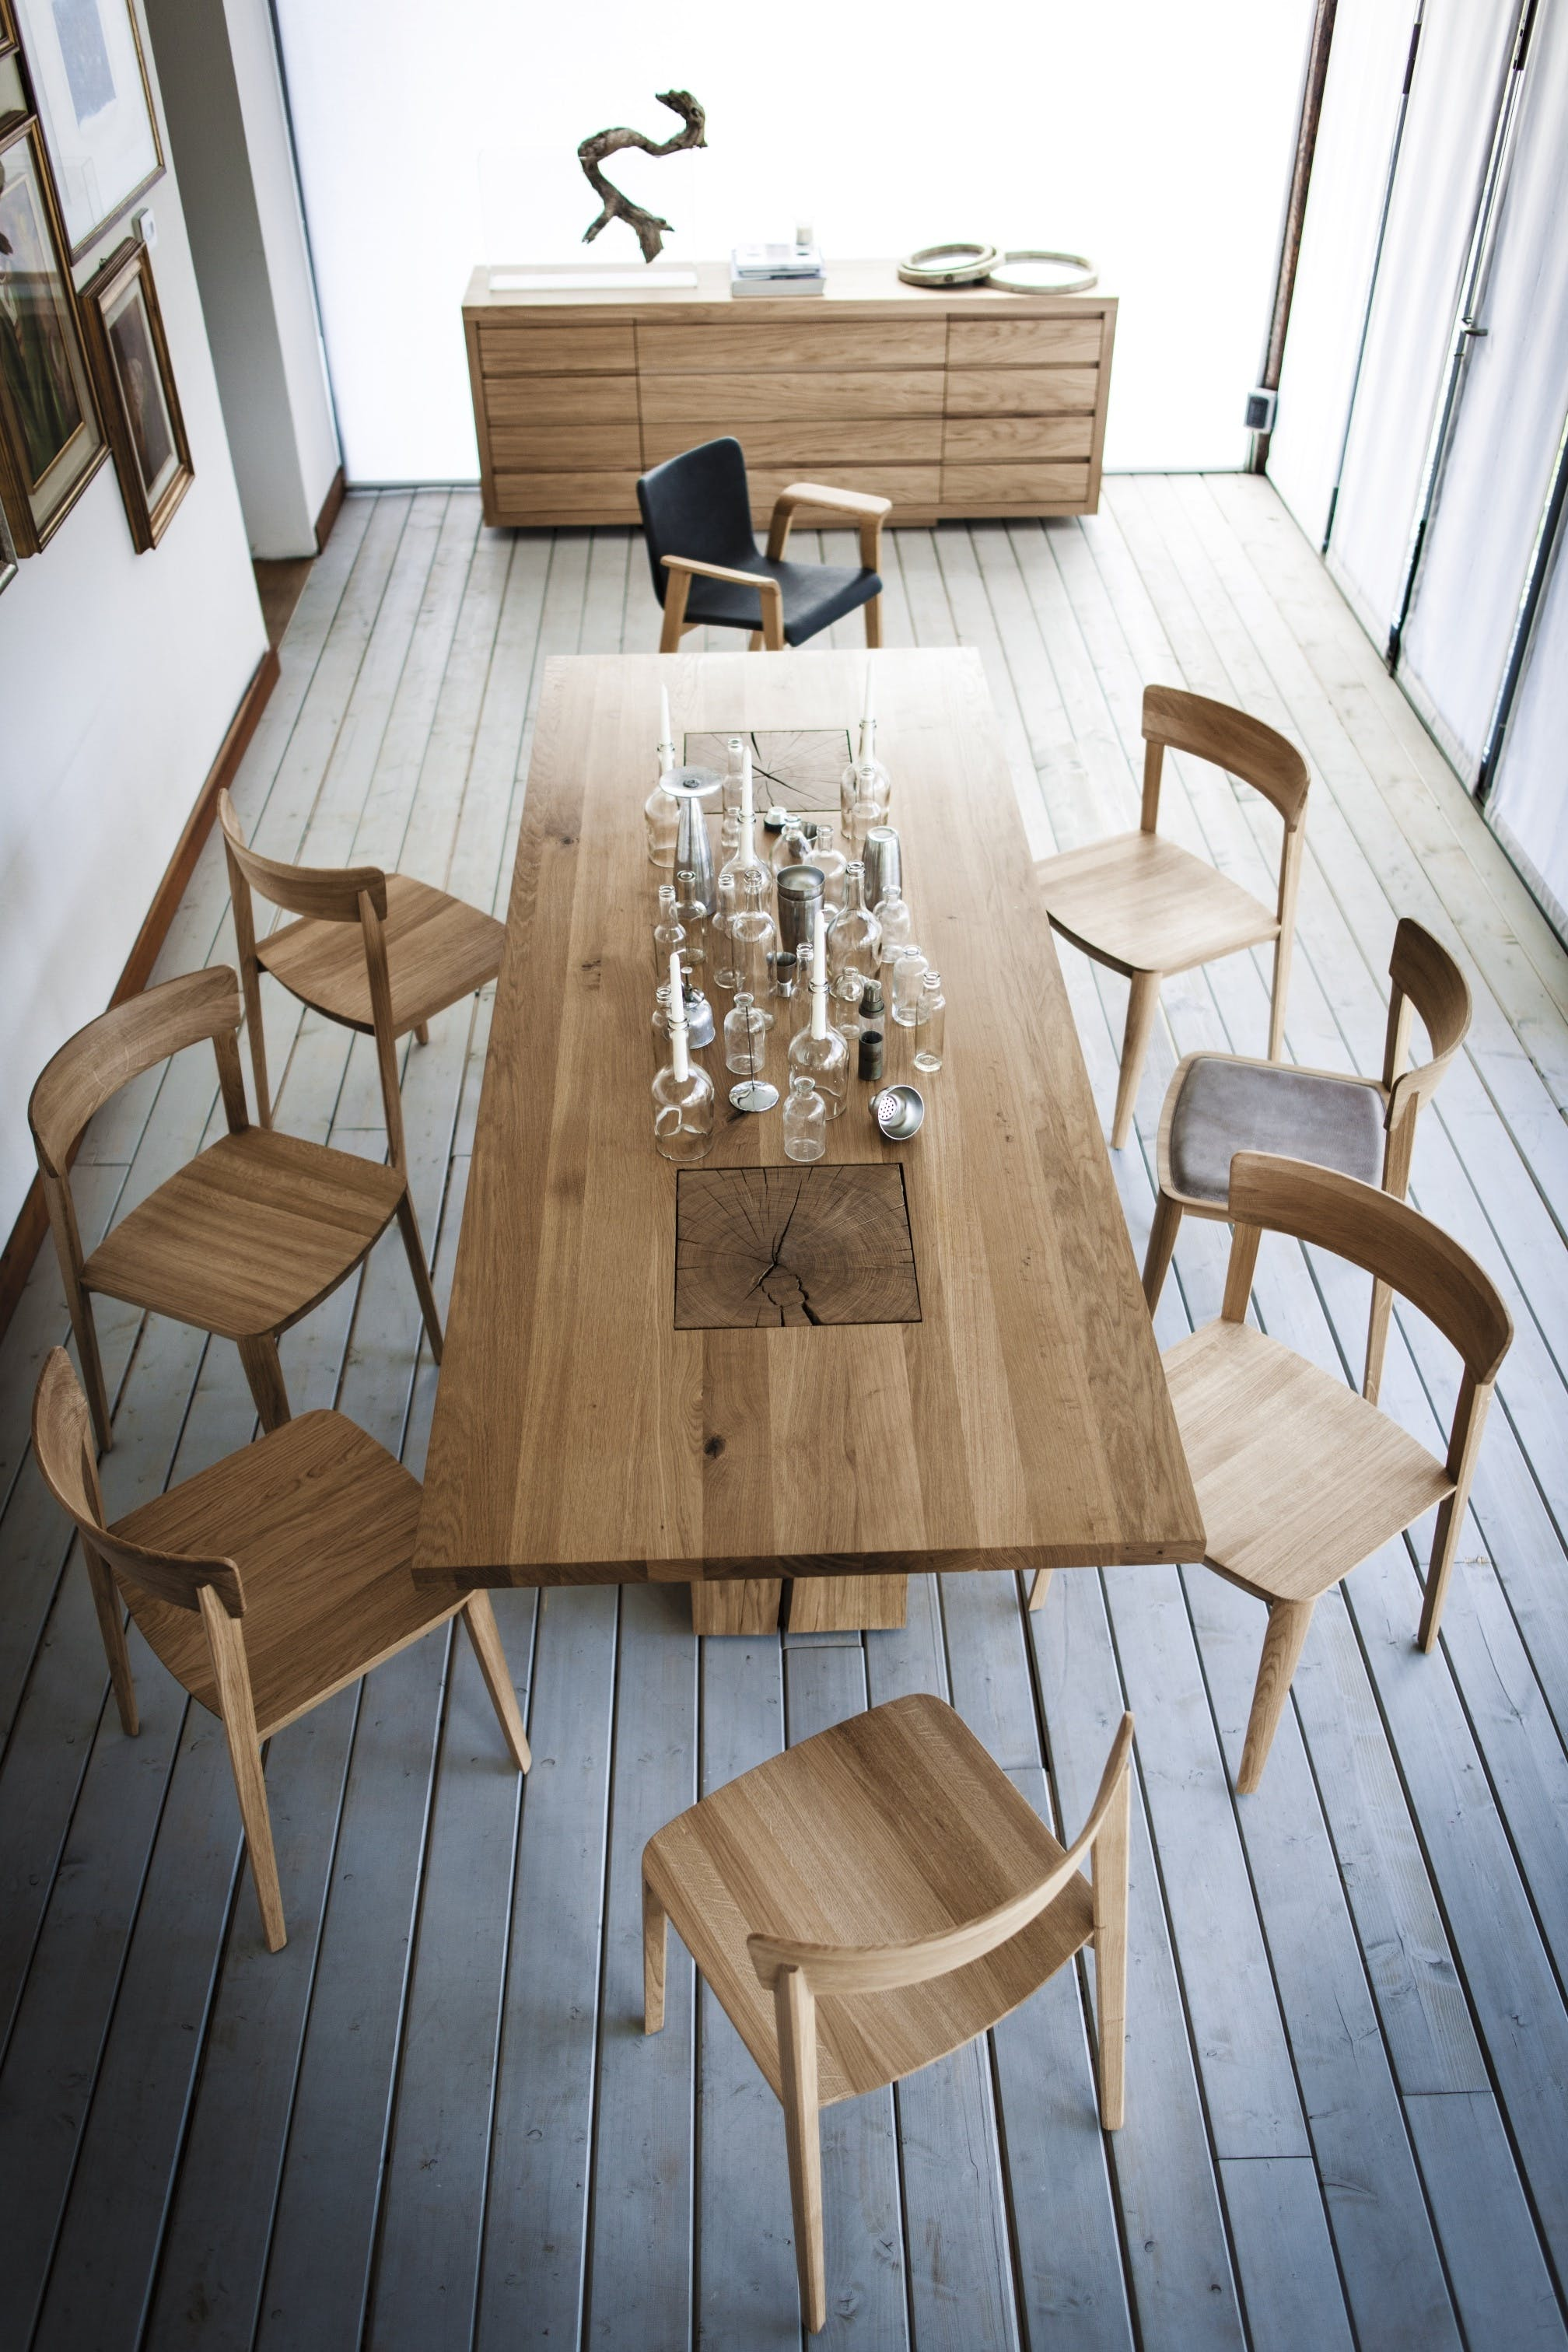 riva 1920 italian wood dining table and chairs at haute living